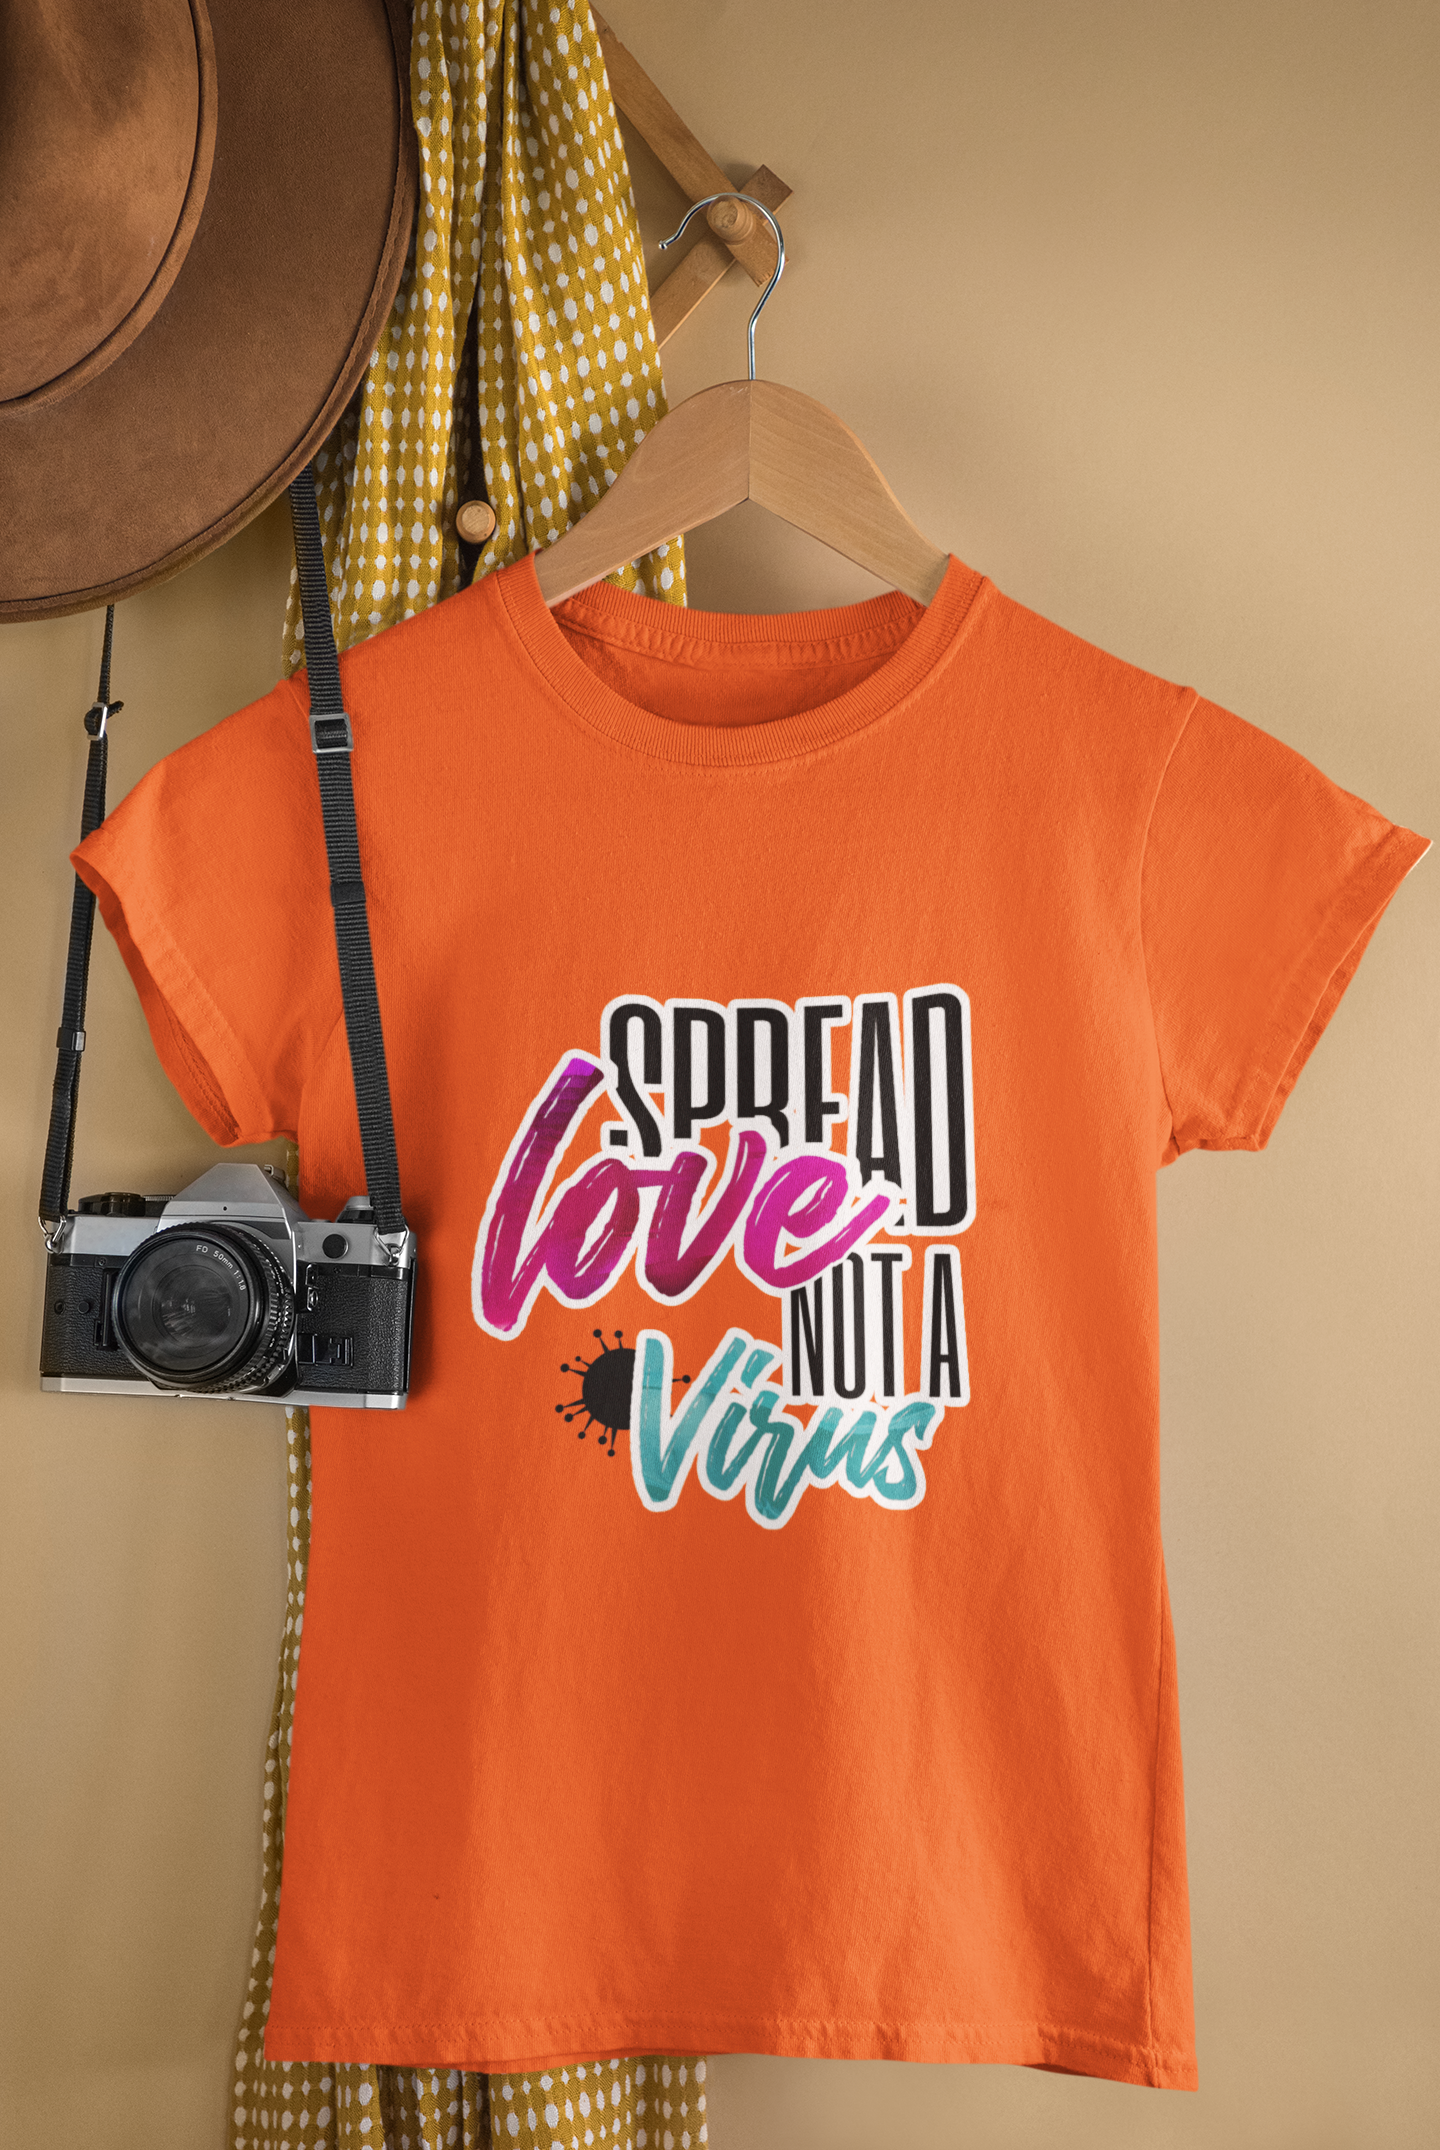 Spread Love Not a virus Orange T-shirt